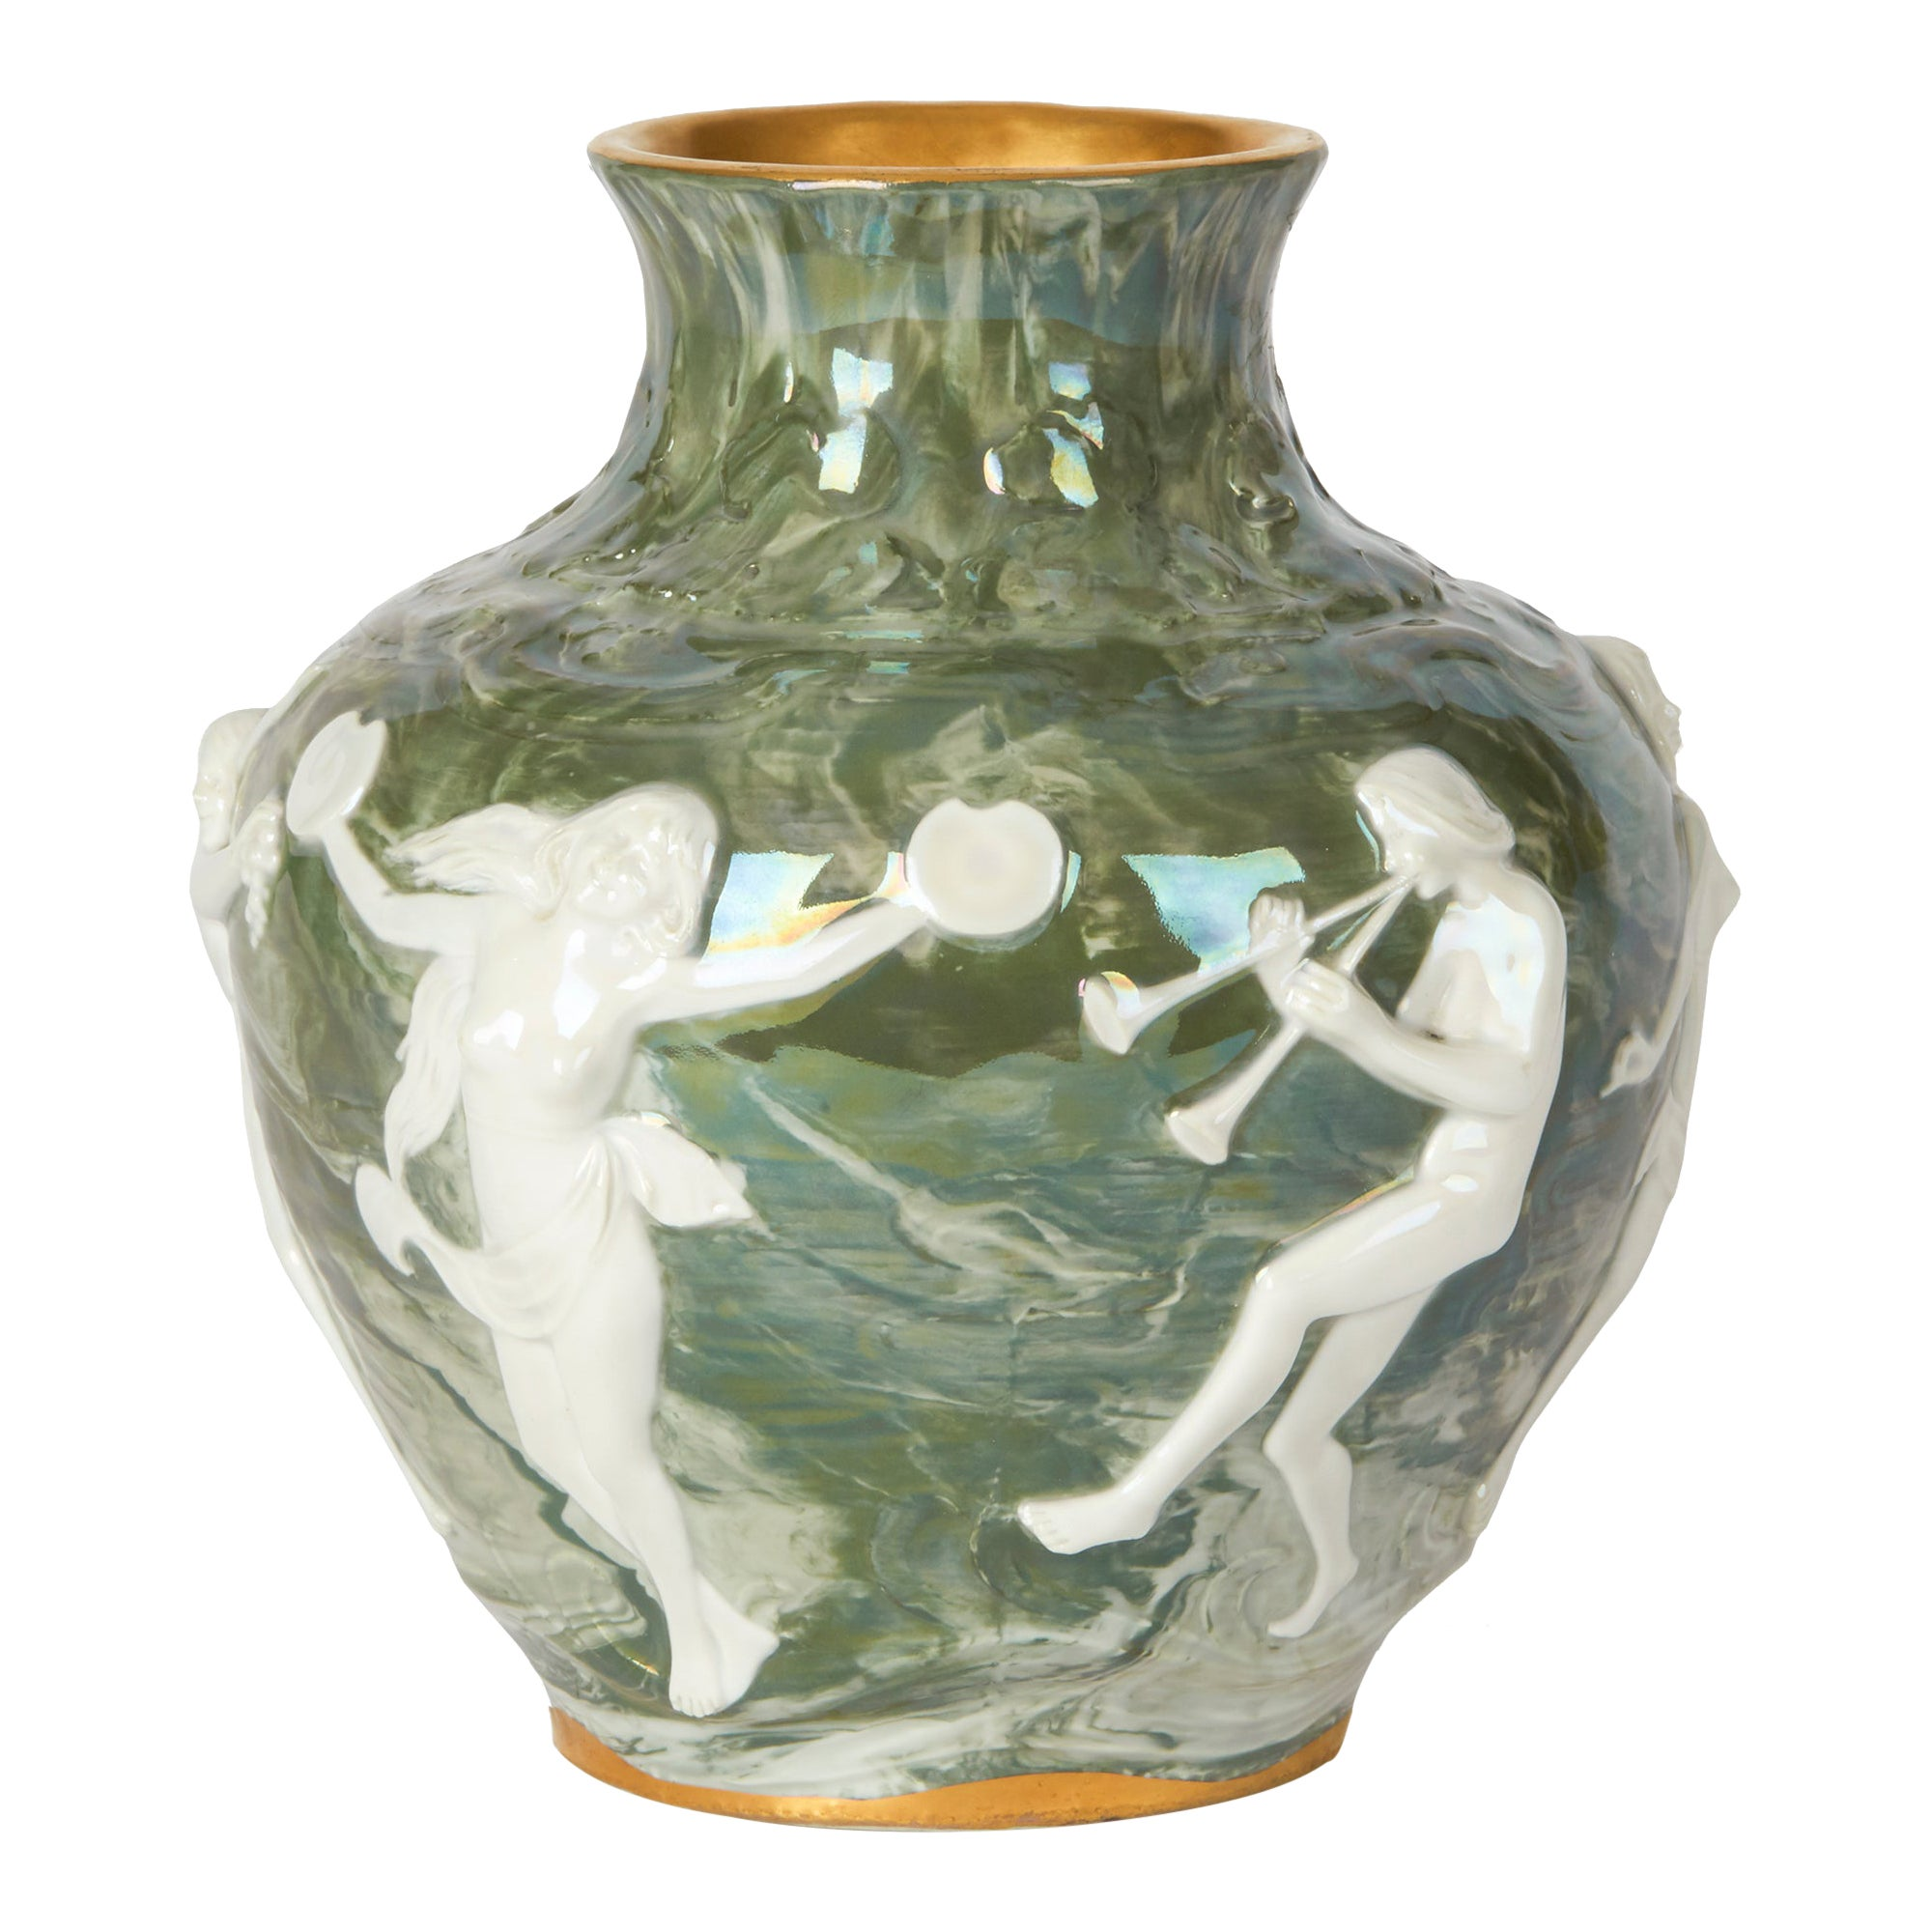 Adolph Oppel Kronach Art Nouveau Pottery Vase with Maidens, circa 1900